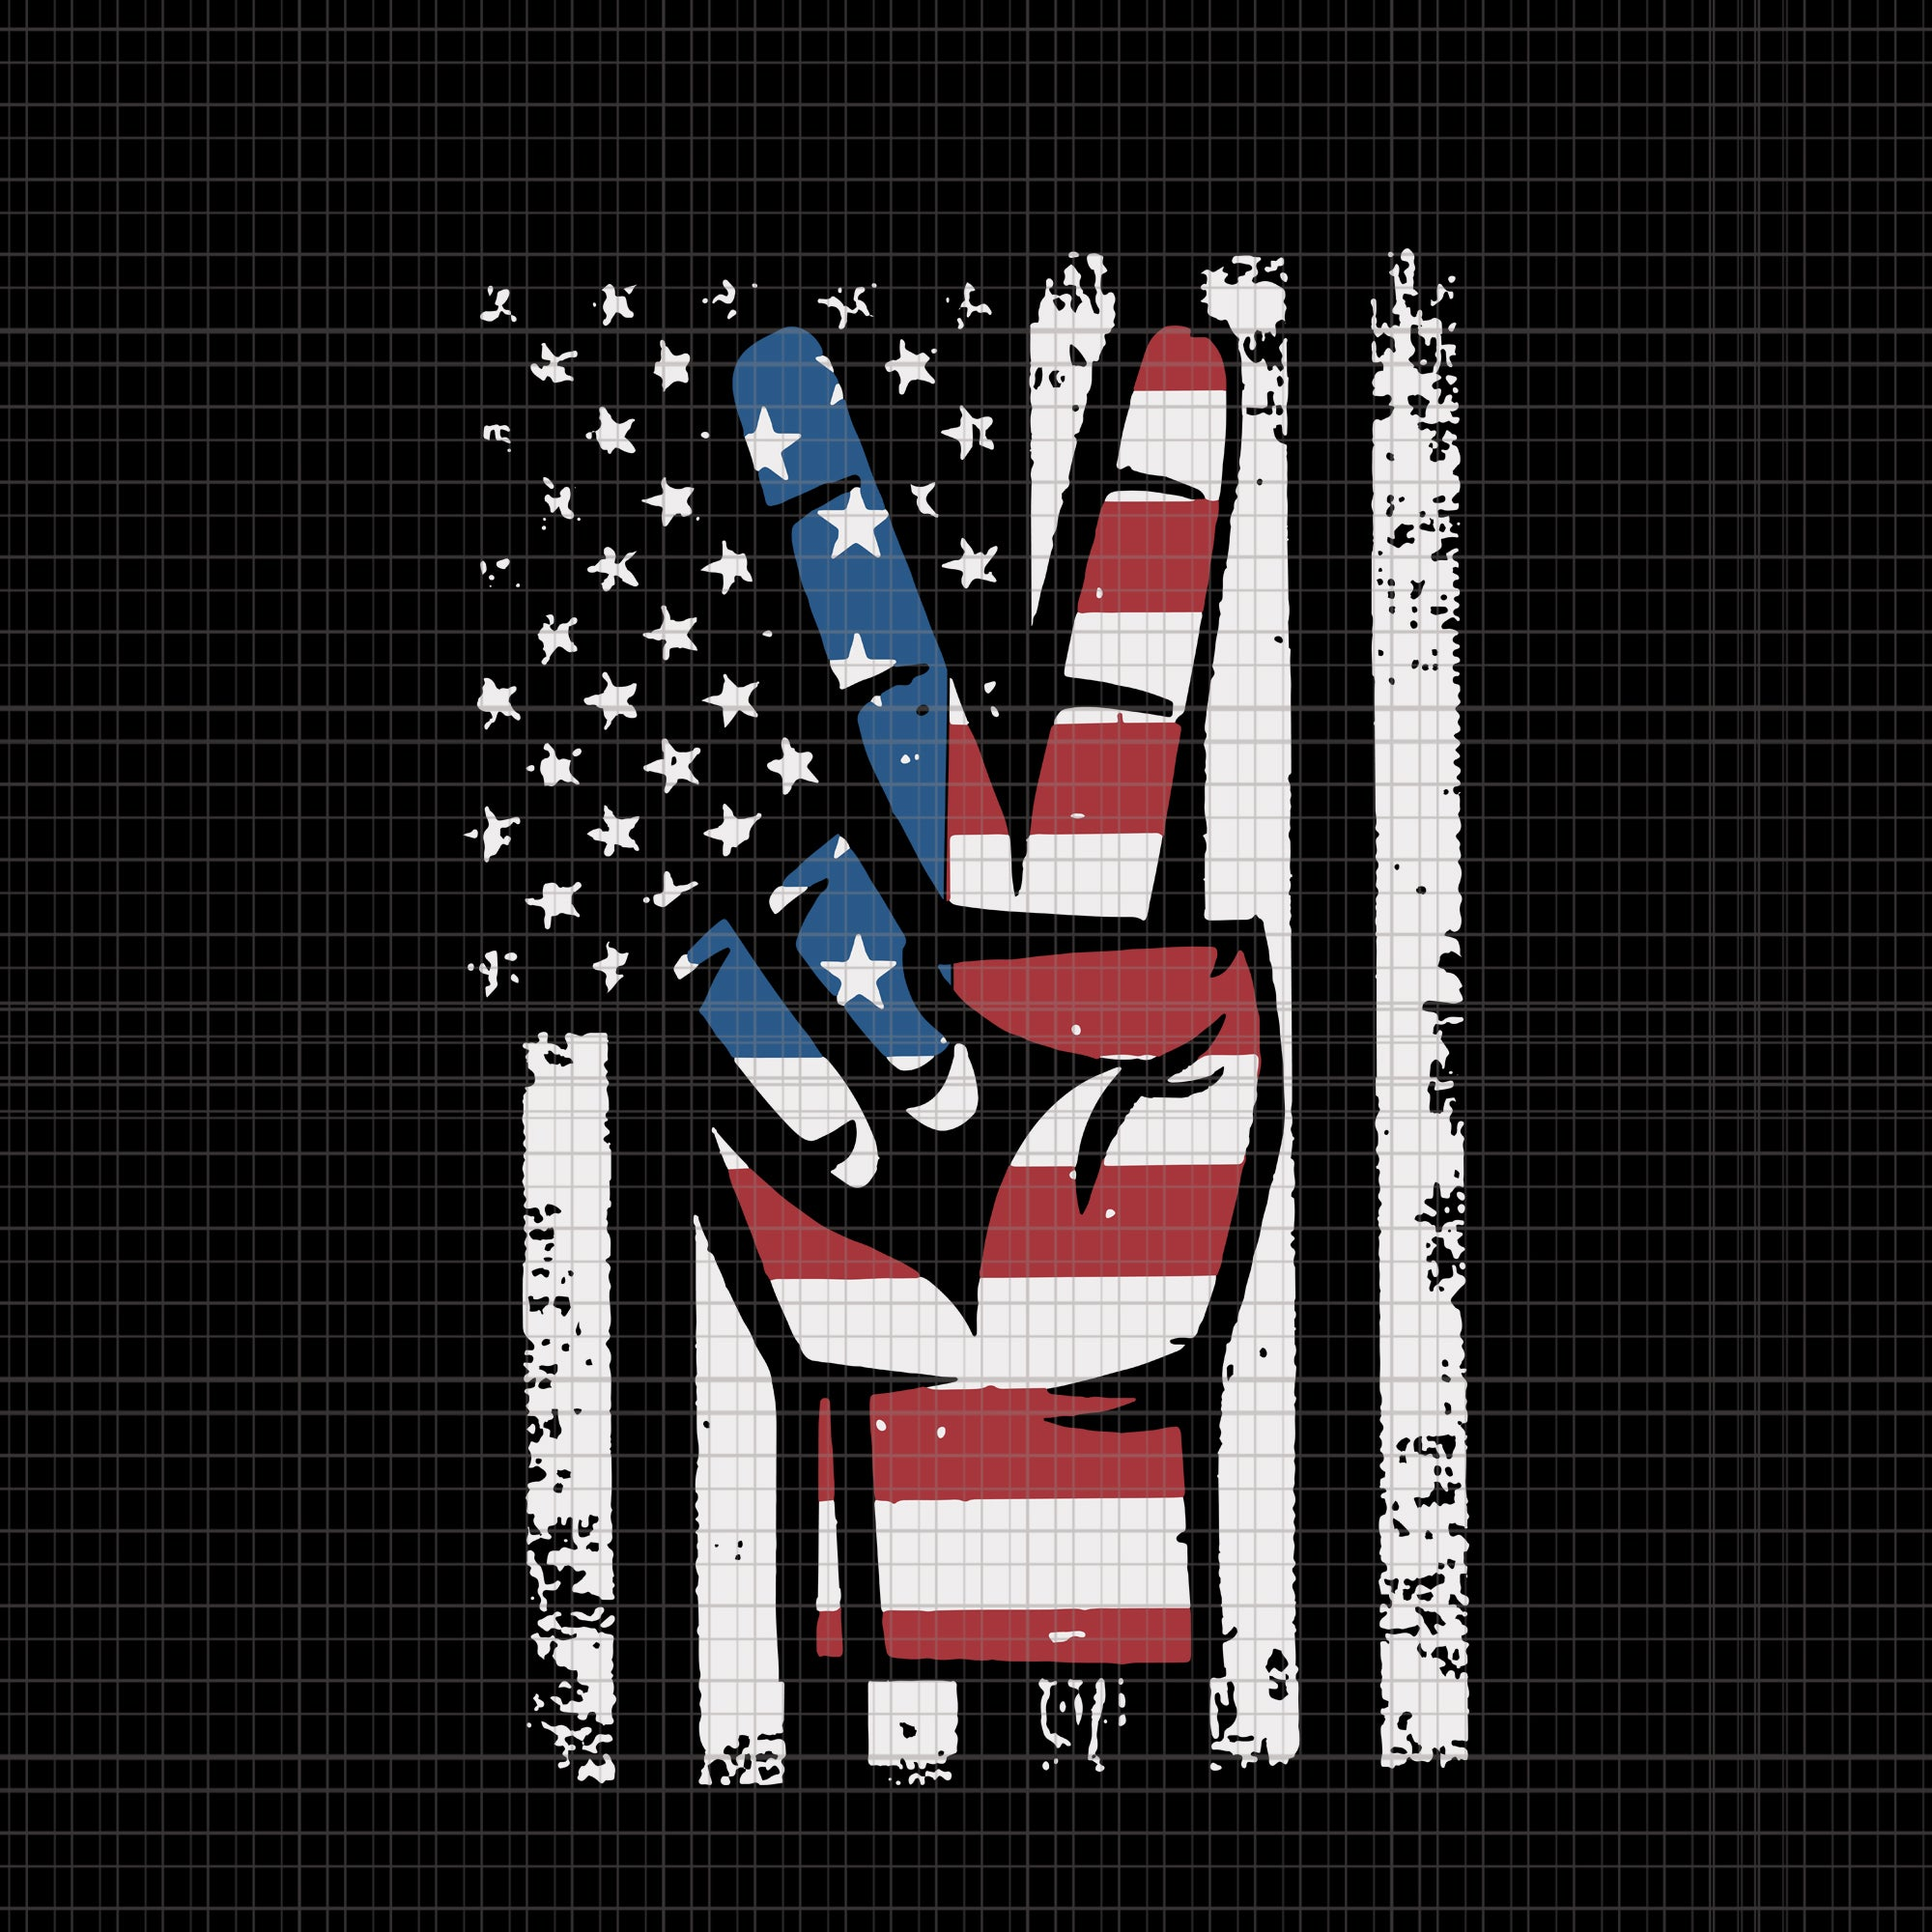 American Flag Peace Sign Hand svg, Hand 4th of July, American Flag Peace Sign Hand, Fourth 4th of July, USA Memorial Day svg, USA flag svg, Love and Peace, Love and Peace 4th of July, Independence Day svg, Independence Day,